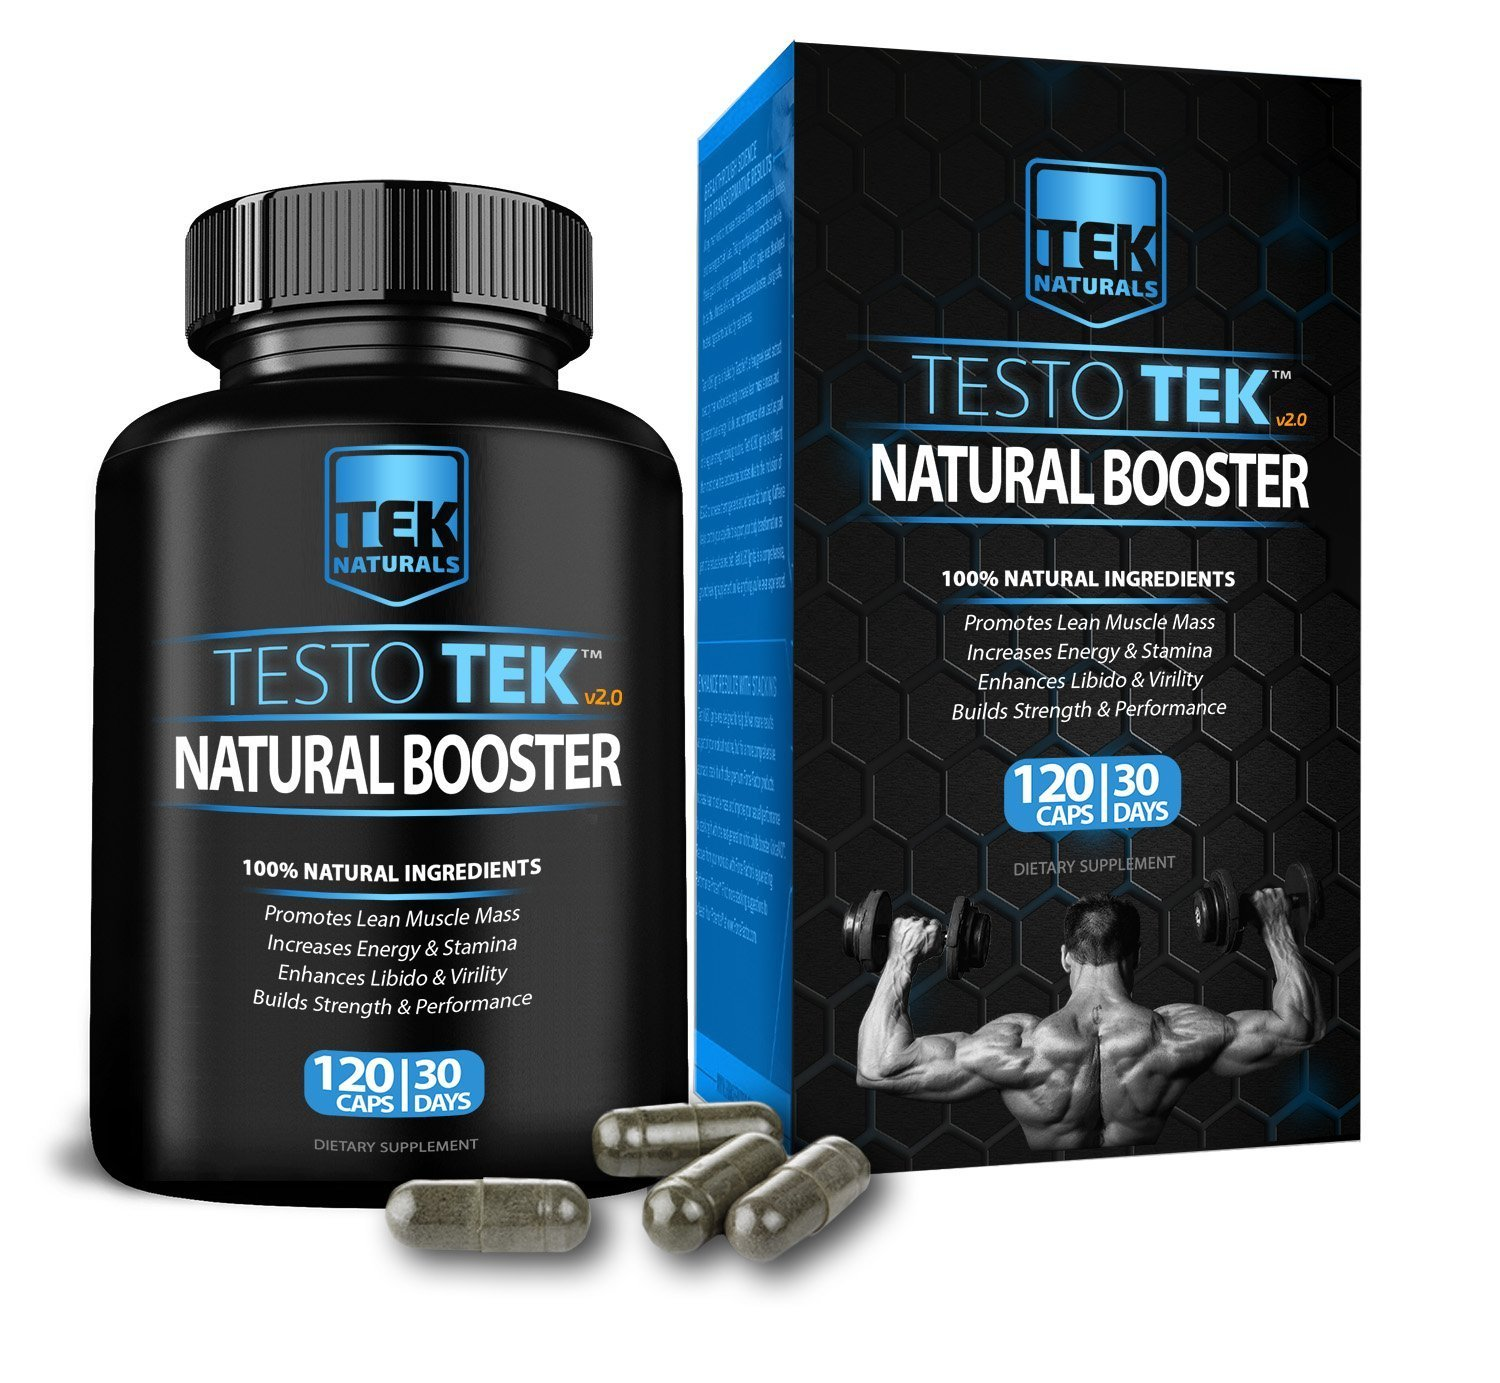 TestoTEK v2.0 All Natural #1 Rated Testosterone Booster - 12 Ingredients, 120 Pills, 30 Day Supply - Strength, Energy, Stamina and More (1)